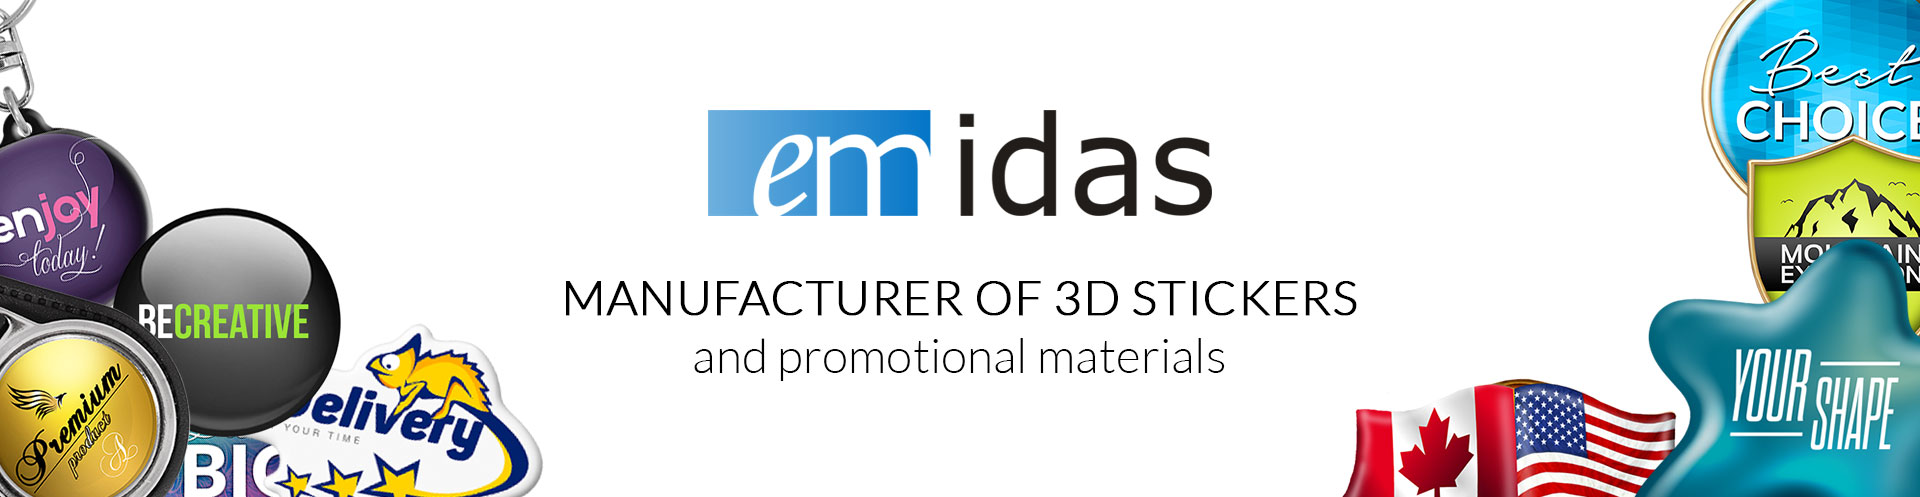 EMIDAS   Manufacturer of 3D stickers and promotional materials